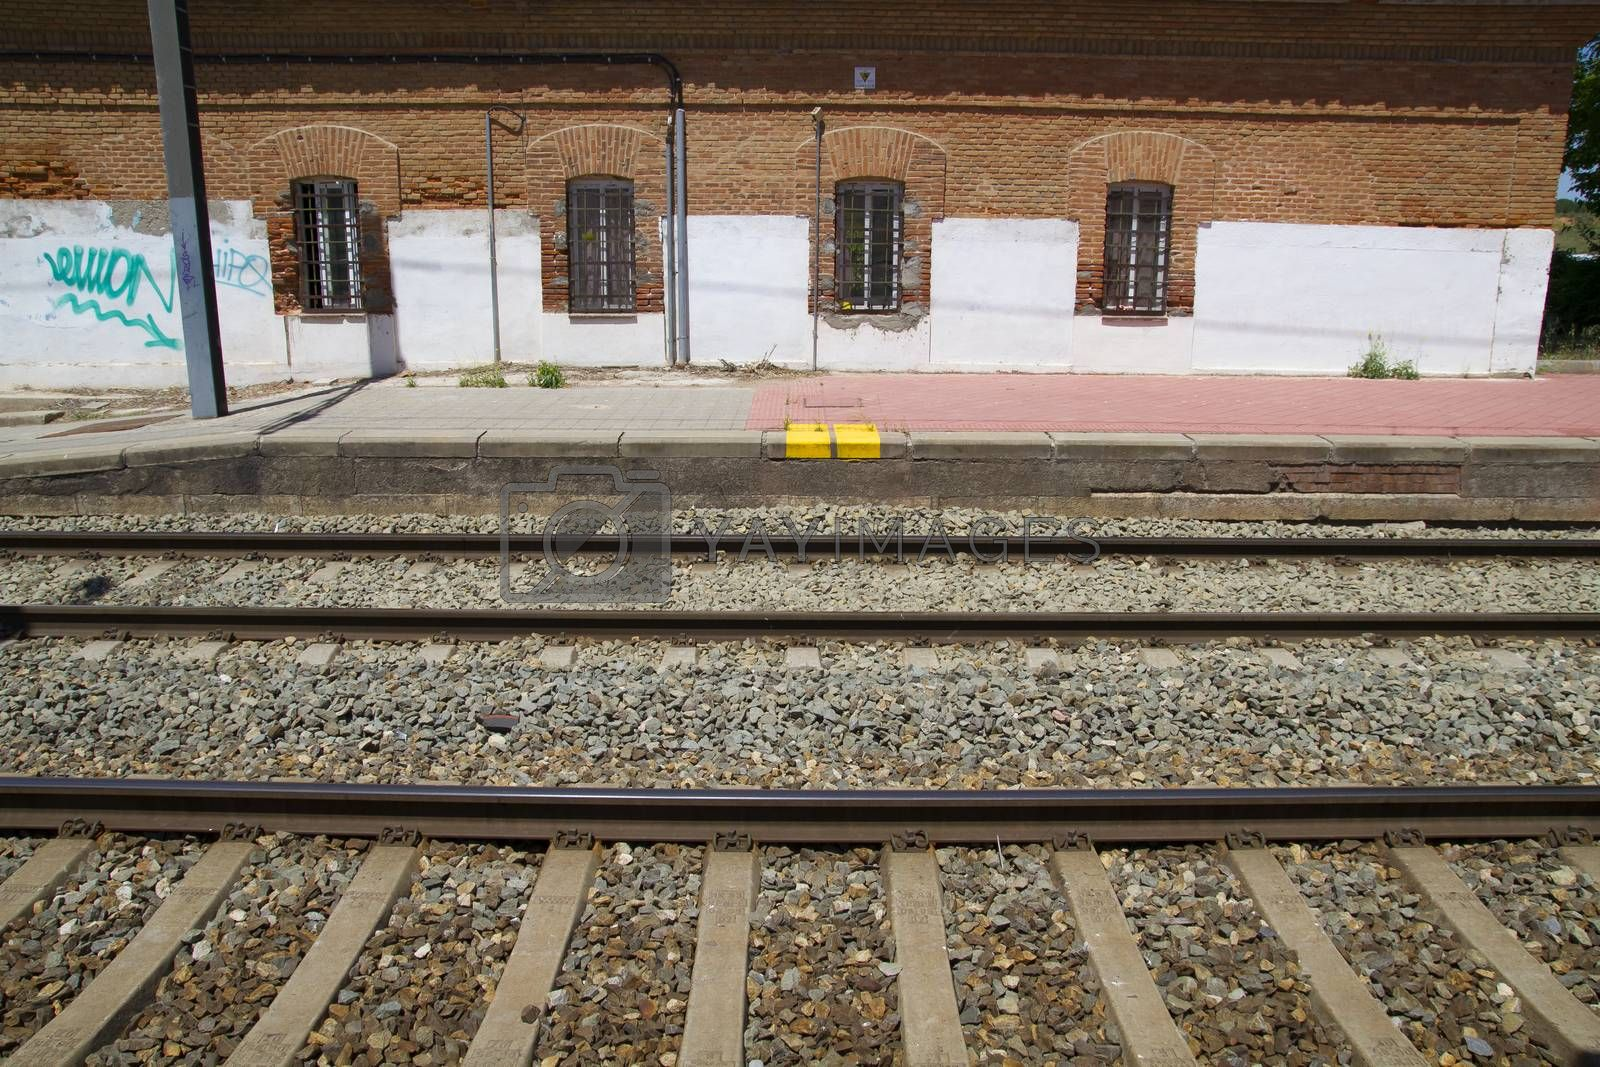 Royalty free image of station, rail station, detail of railways in Spain by FernandoCortes